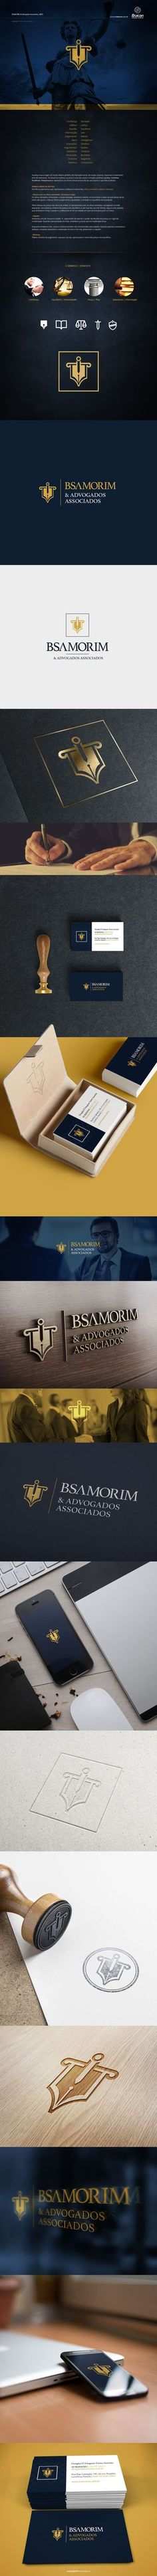 LOGO INDENTITY | BSAMORIM & Advogados Associados on Behance